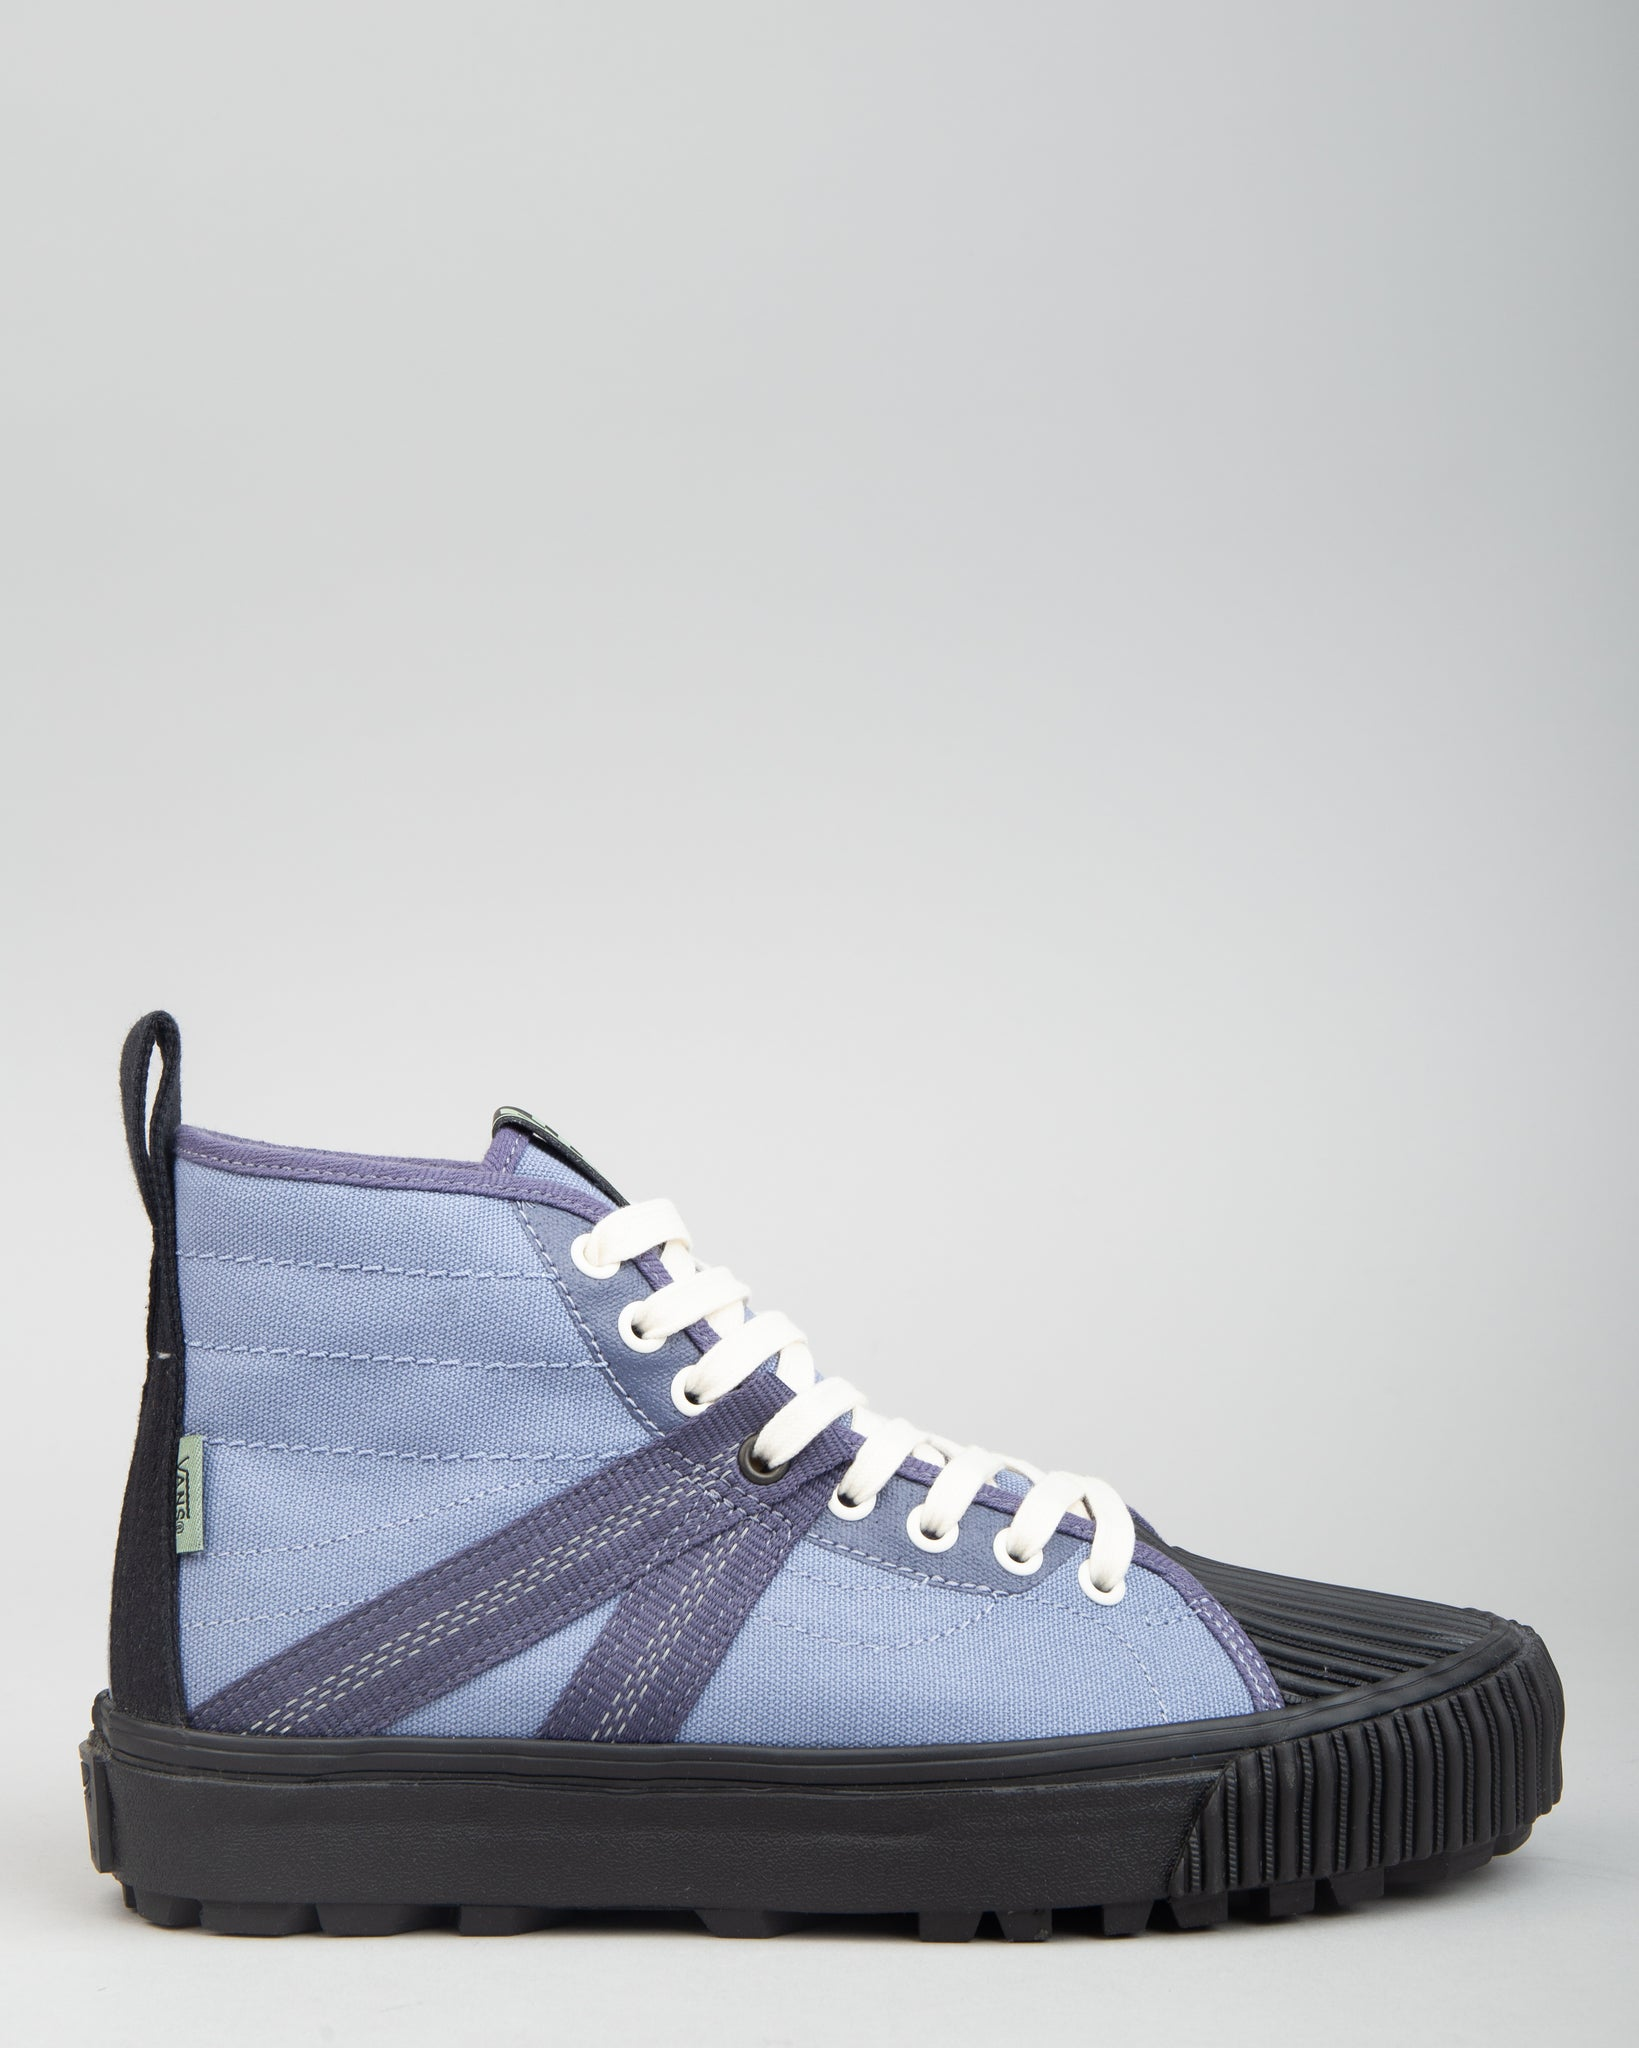 TH SK8-HI Decon V Lug LX Tempest/Black